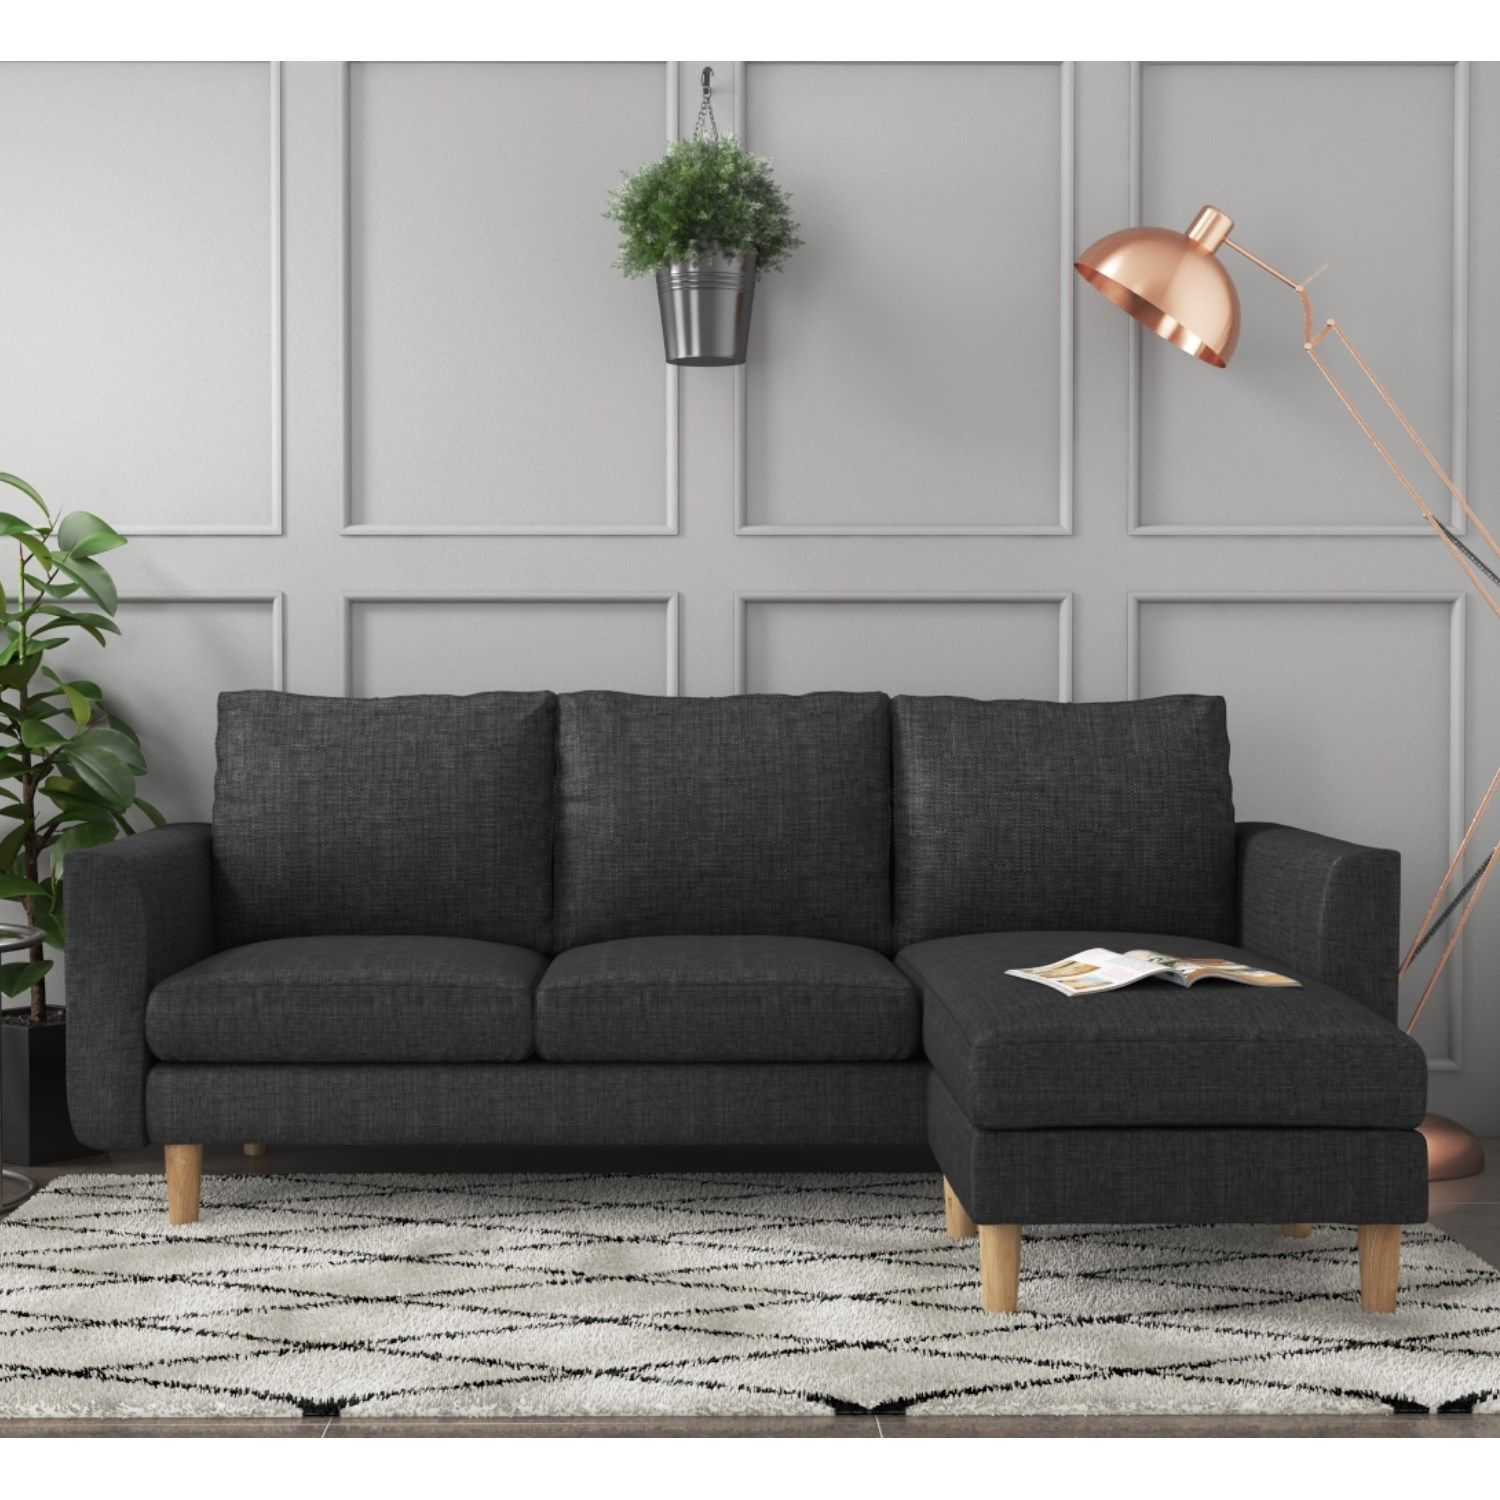 Brooke Small Charcoal Grey Corner Apartment Sofa Fabric Corner Sofa Grey Corner Sofa Kitchen Sofa